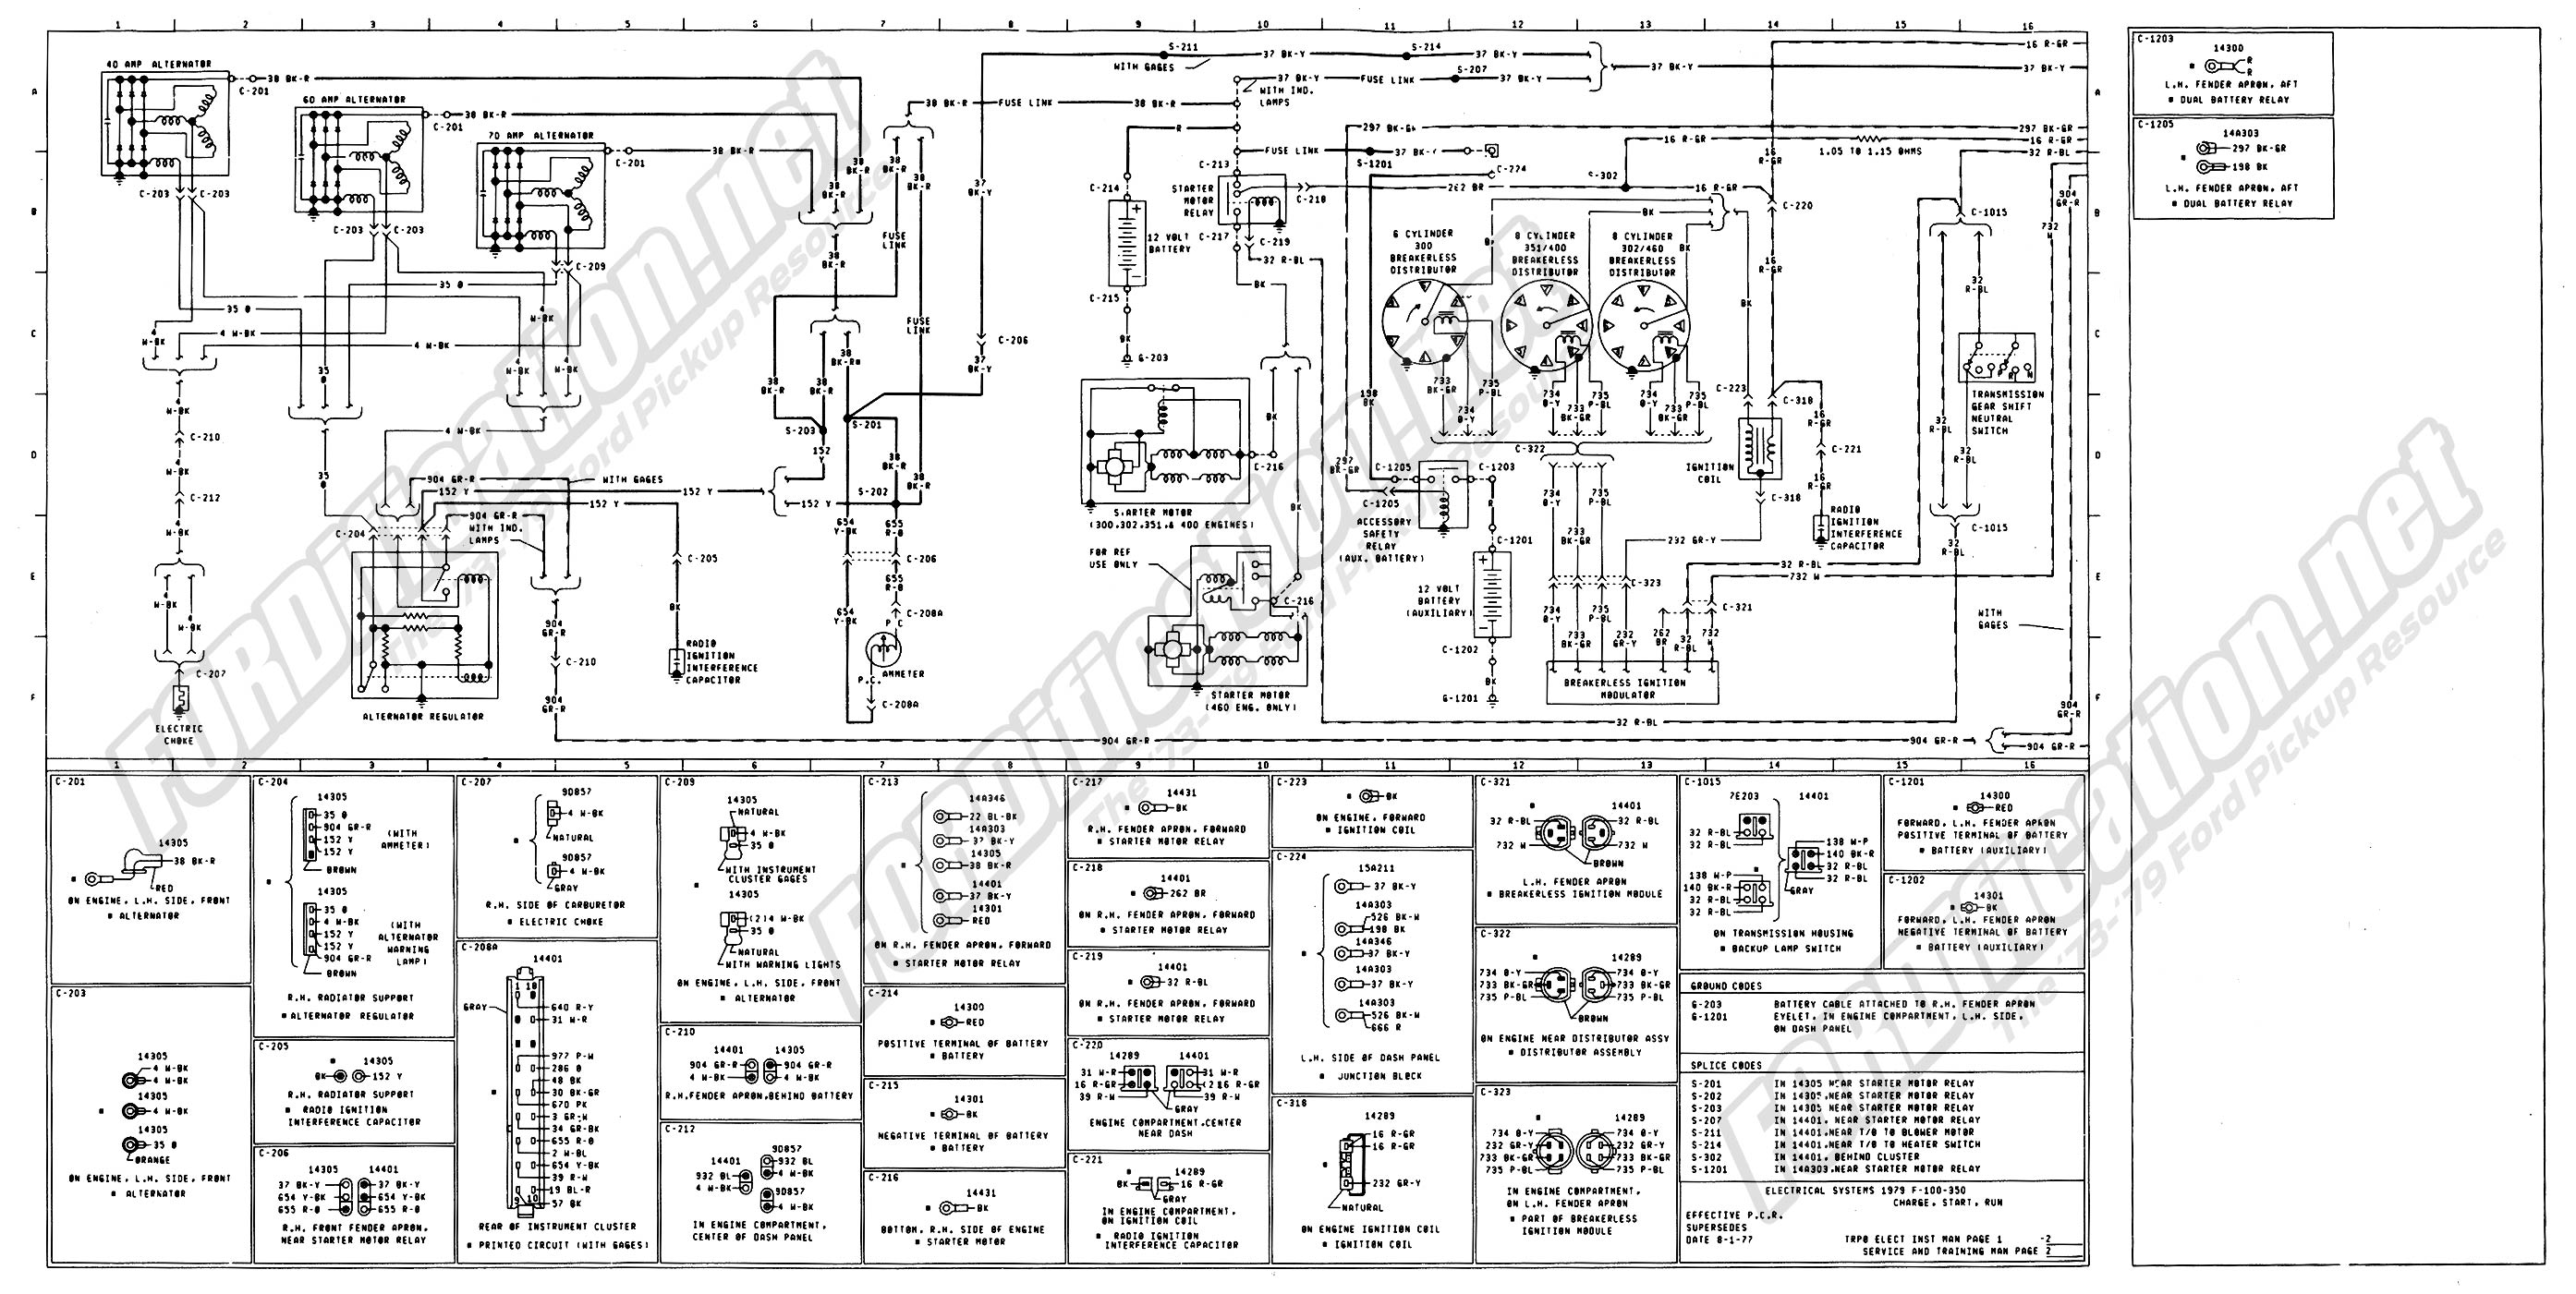 wiring_79master_2of9 1973 1979 ford truck wiring diagrams & schematics fordification net f150 wiring schematic at mifinder.co